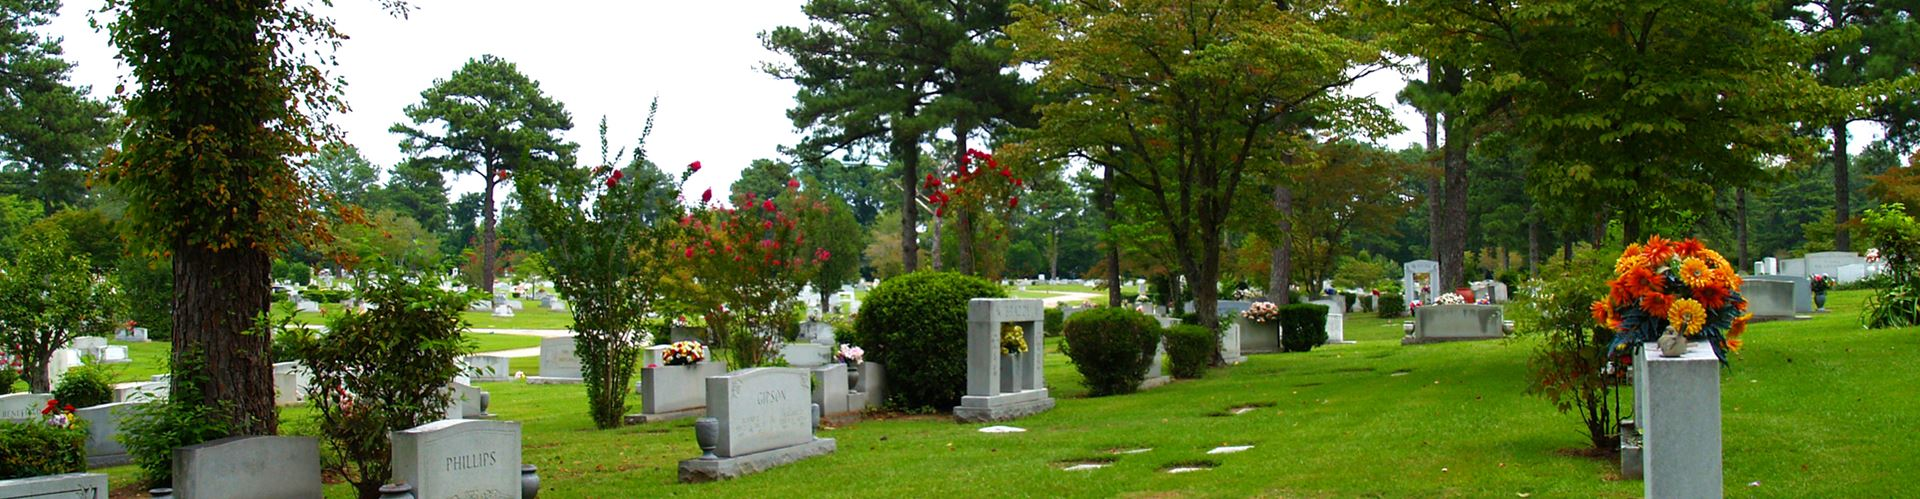 Cemetery with lawn crypts